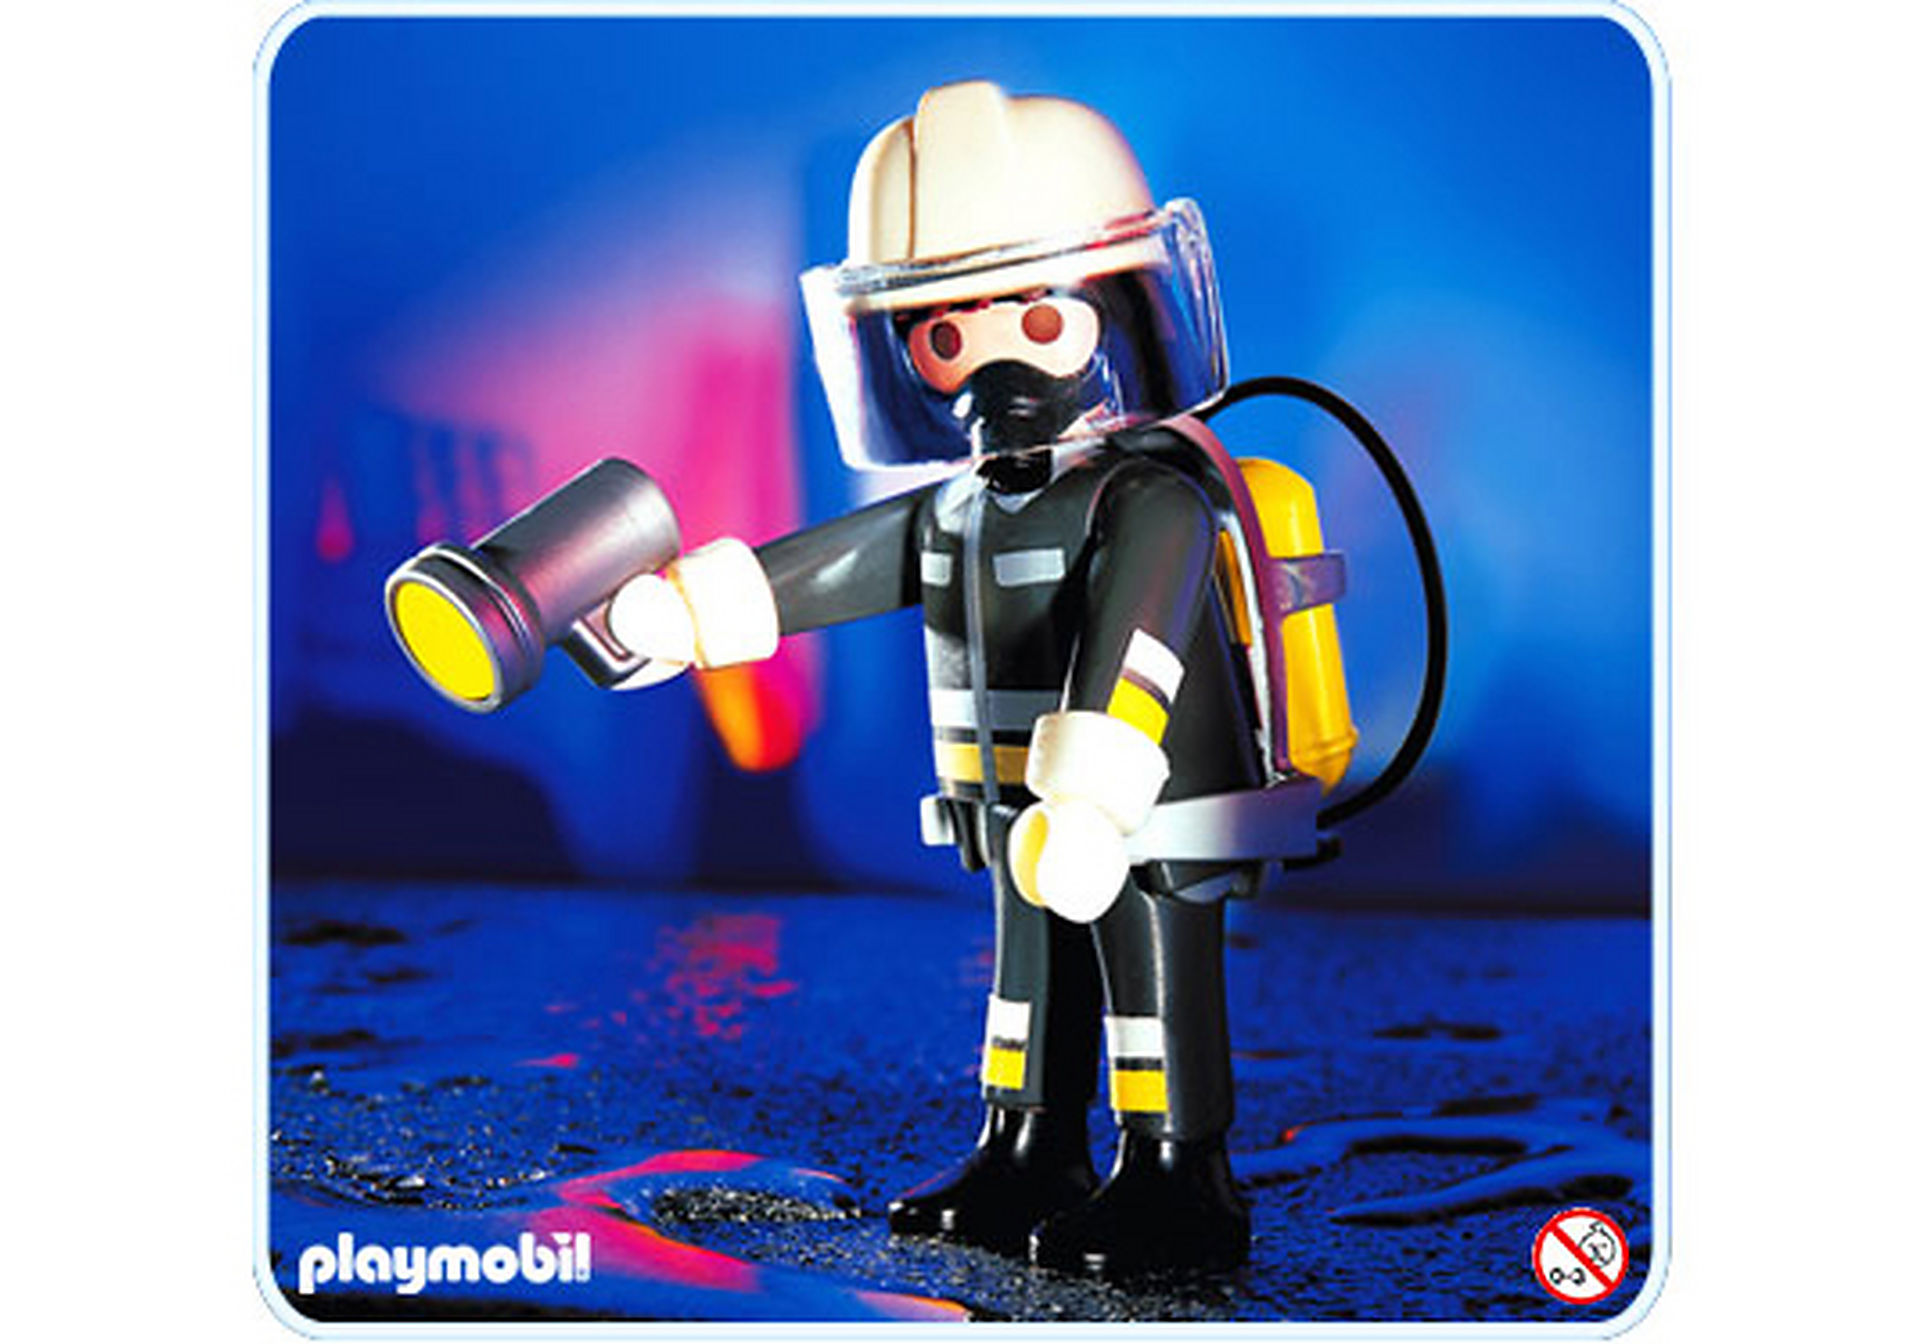 http://media.playmobil.com/i/playmobil/4608-A_product_detail/Pompier